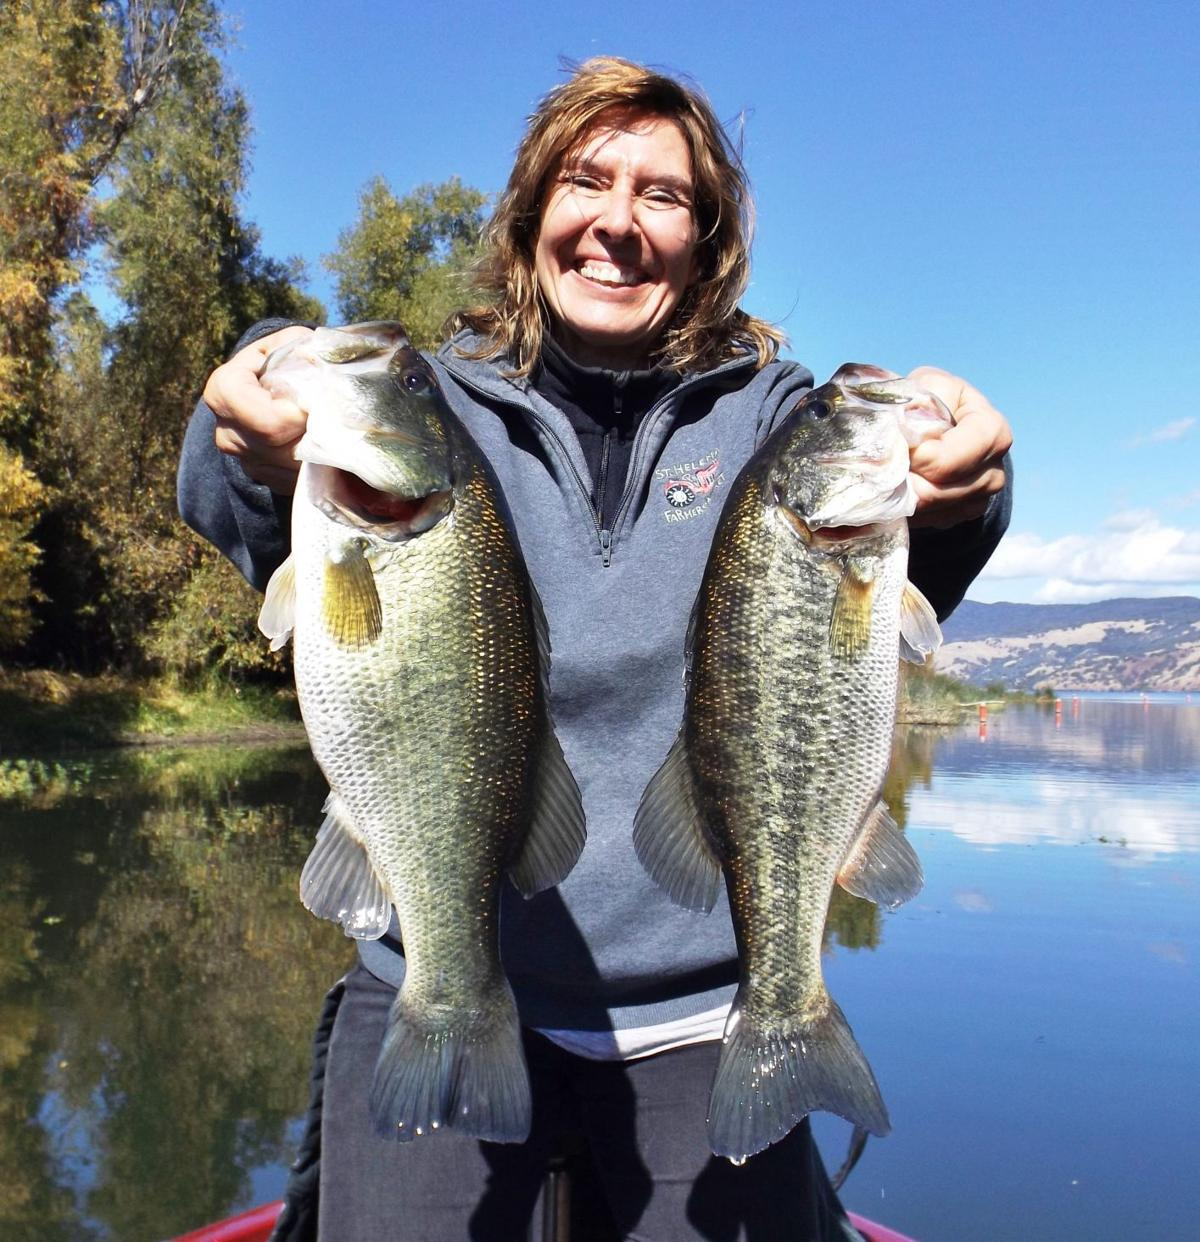 The Fishing Report Pair Catch 31 Largemouth Bass On Clear Lake Outdoors Napavalleyregister Com